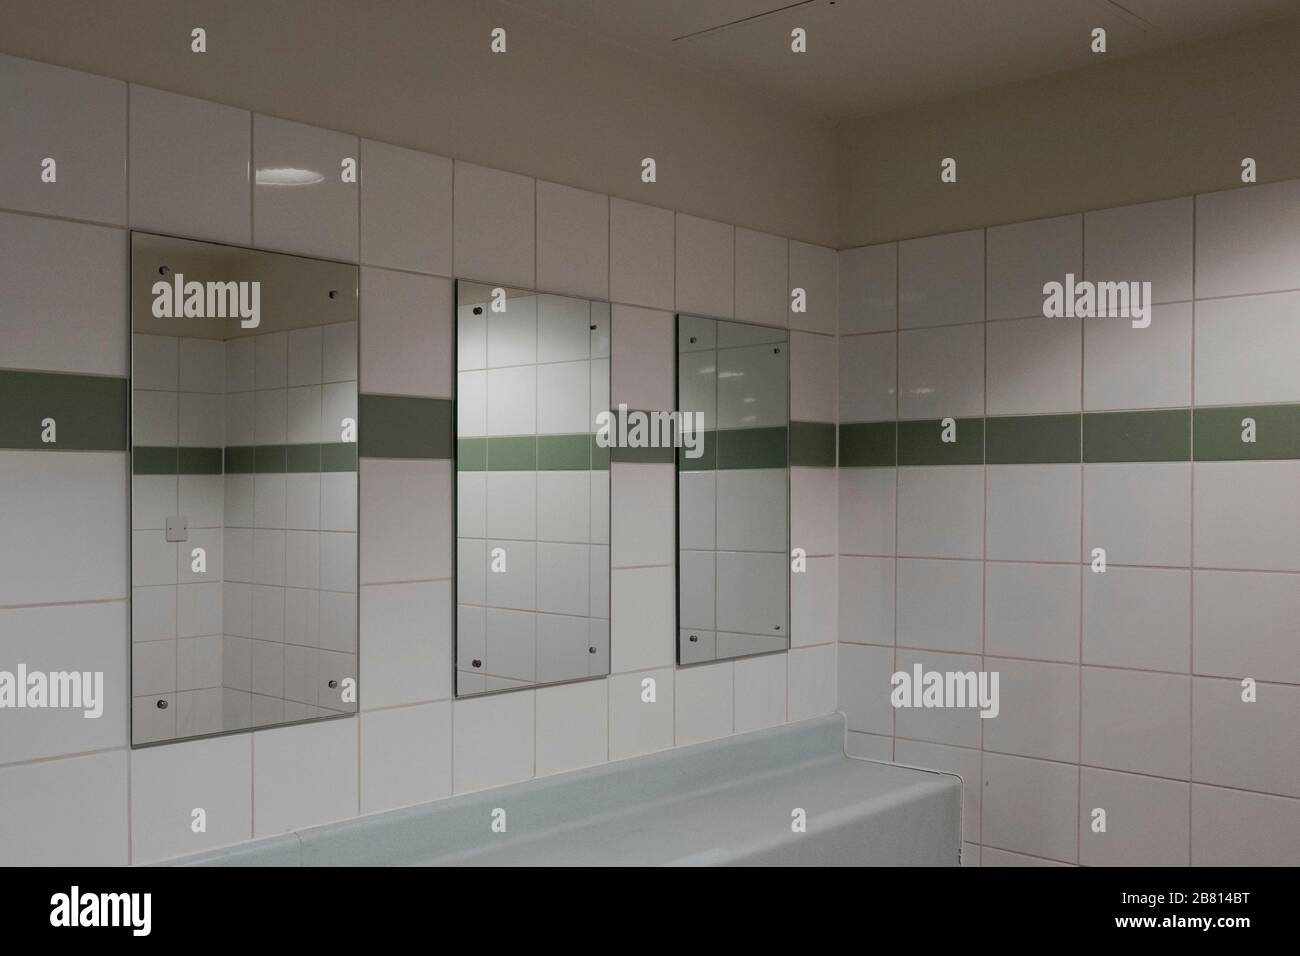 Bathroom Mirror Abstract High Resolution Stock Photography and